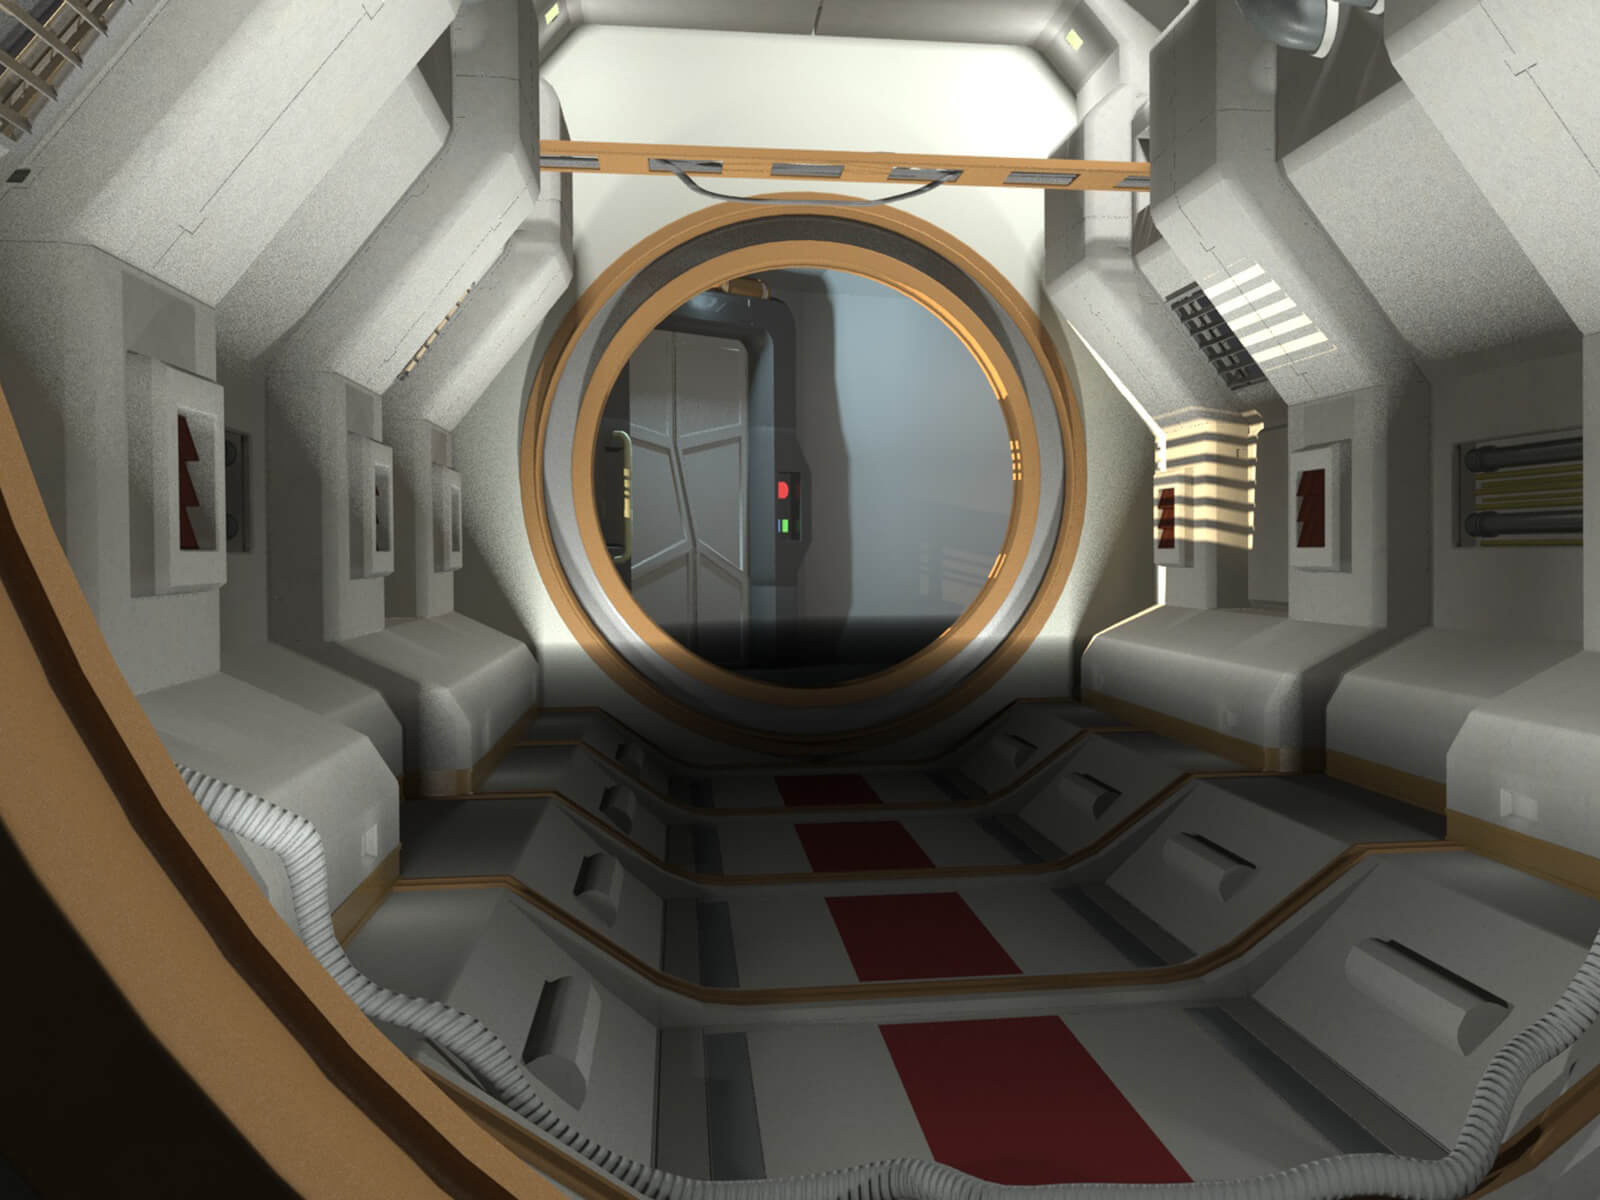 Cylindrical white and red corridor in a sterile, futuristic style ending at a round porthole to another area.